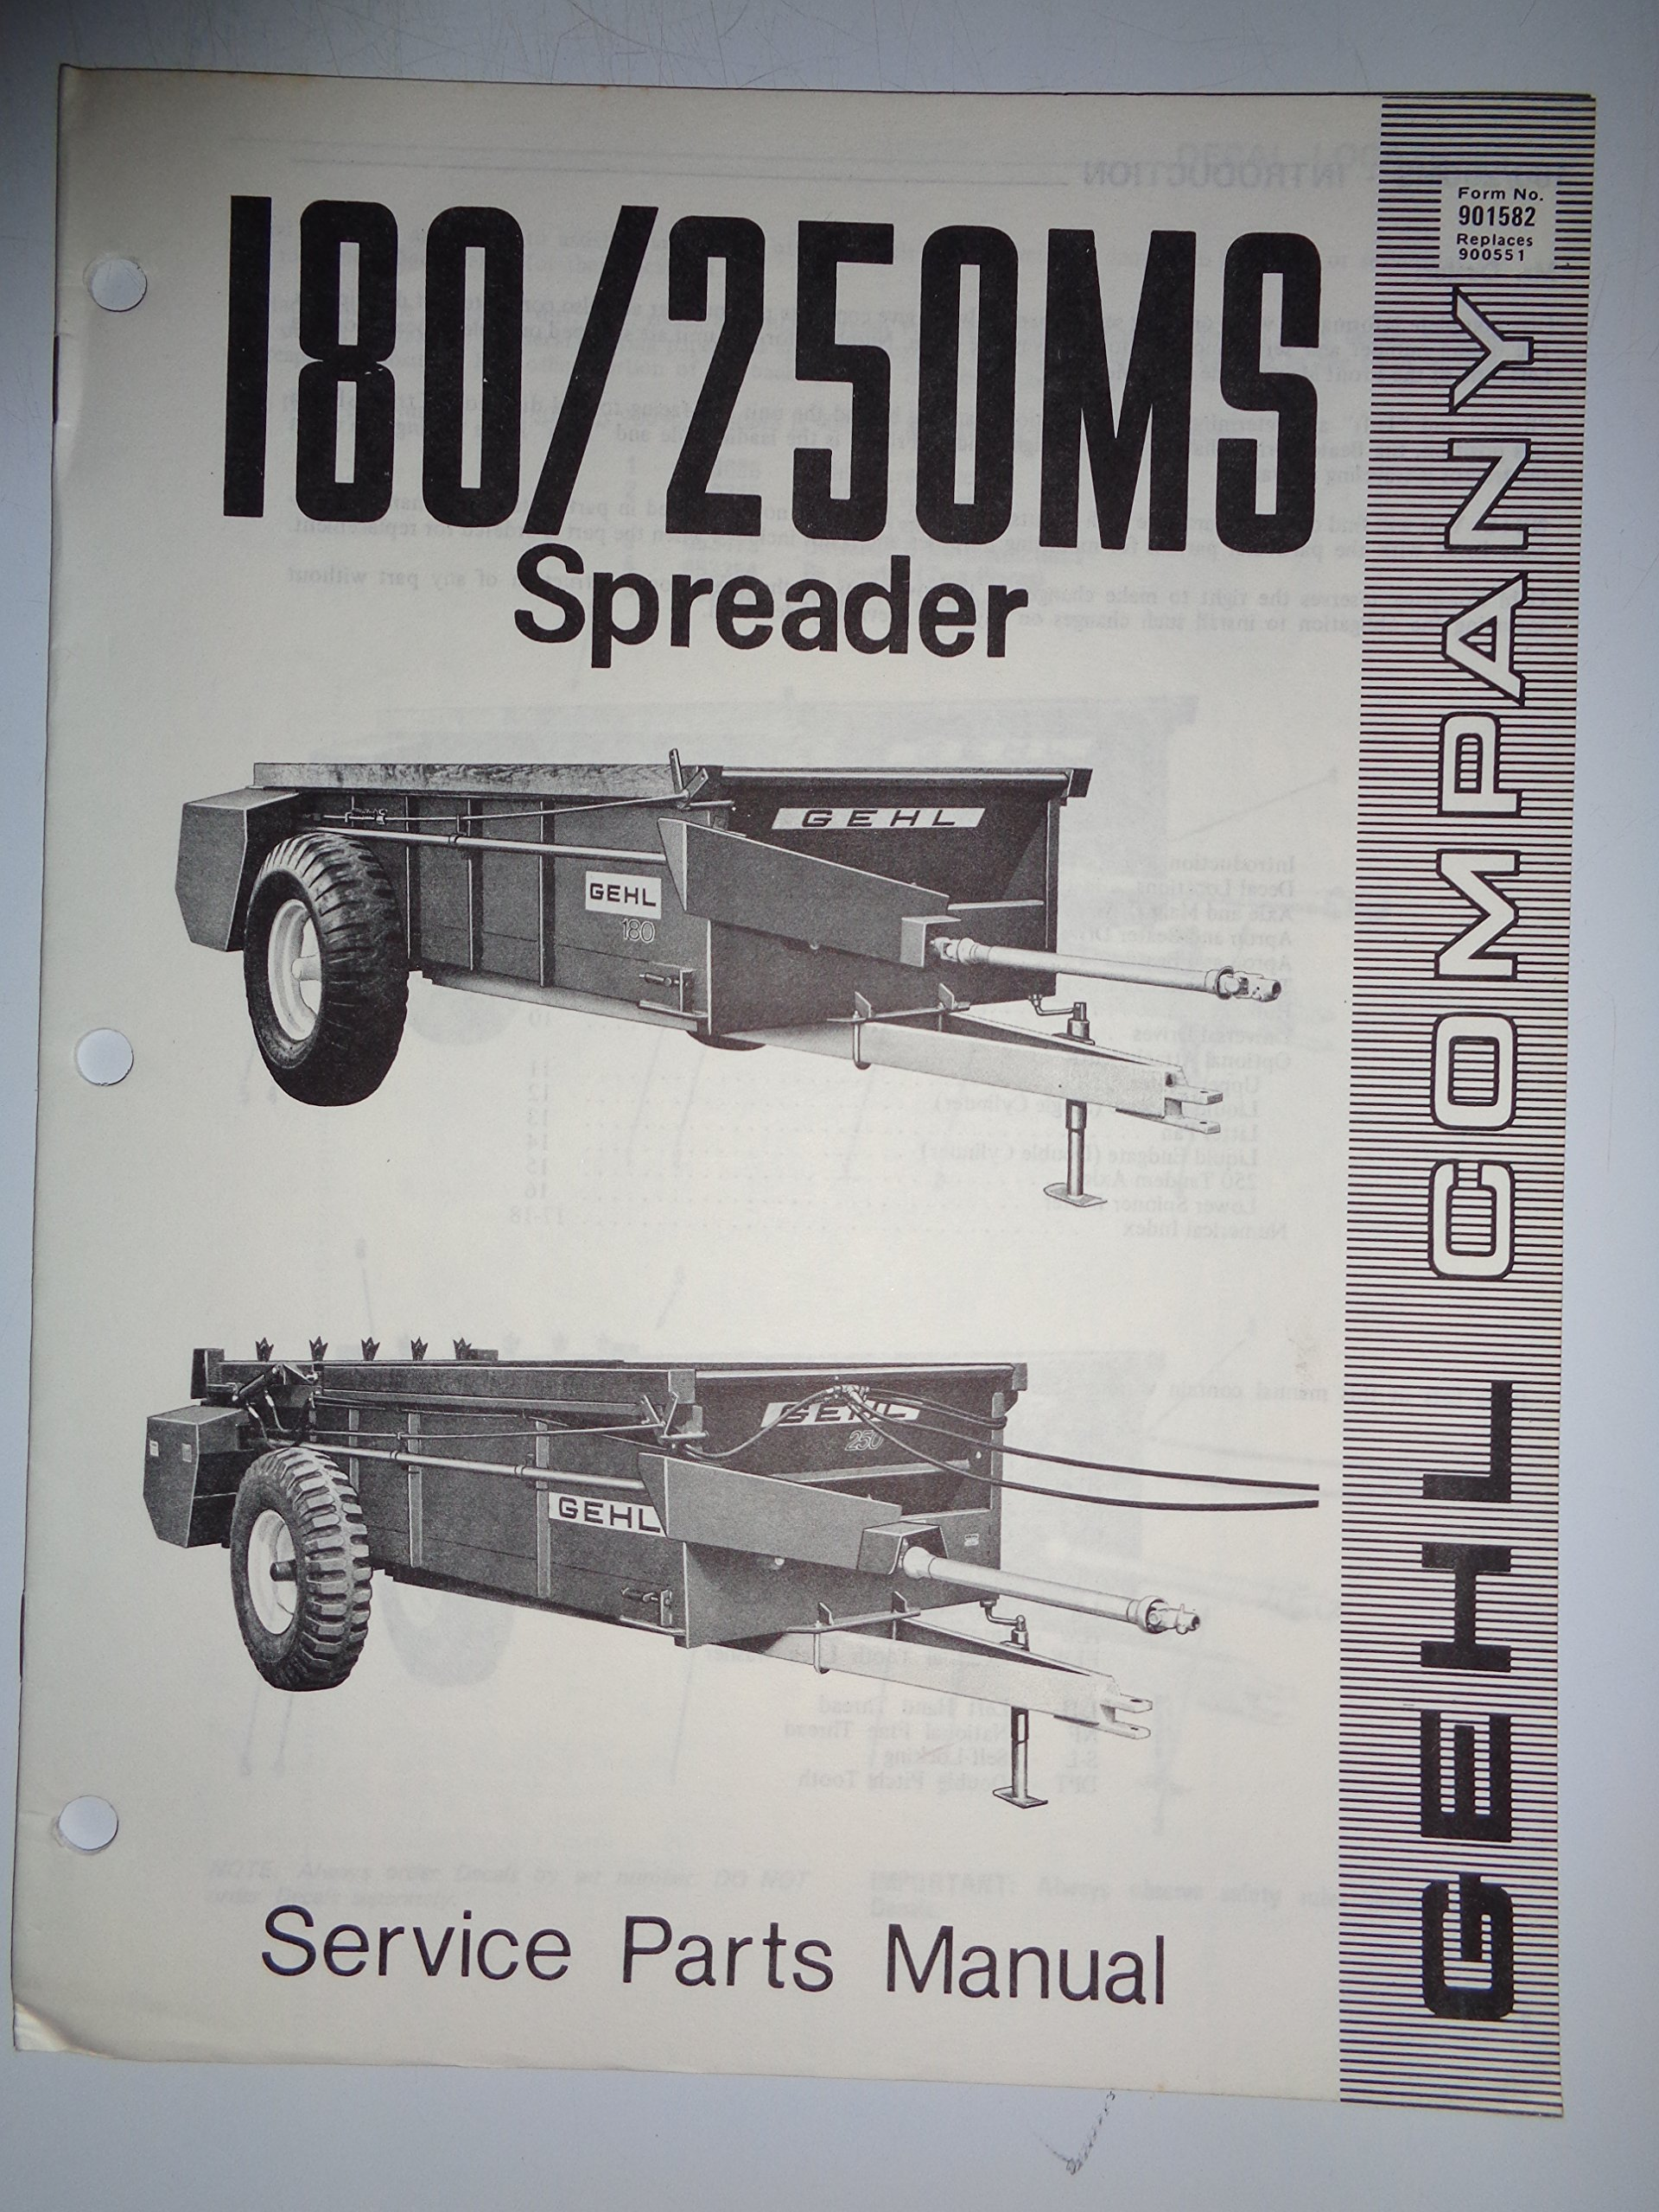 Gehl 180 and 250 MS Manure Spreader Parts Catalog Book